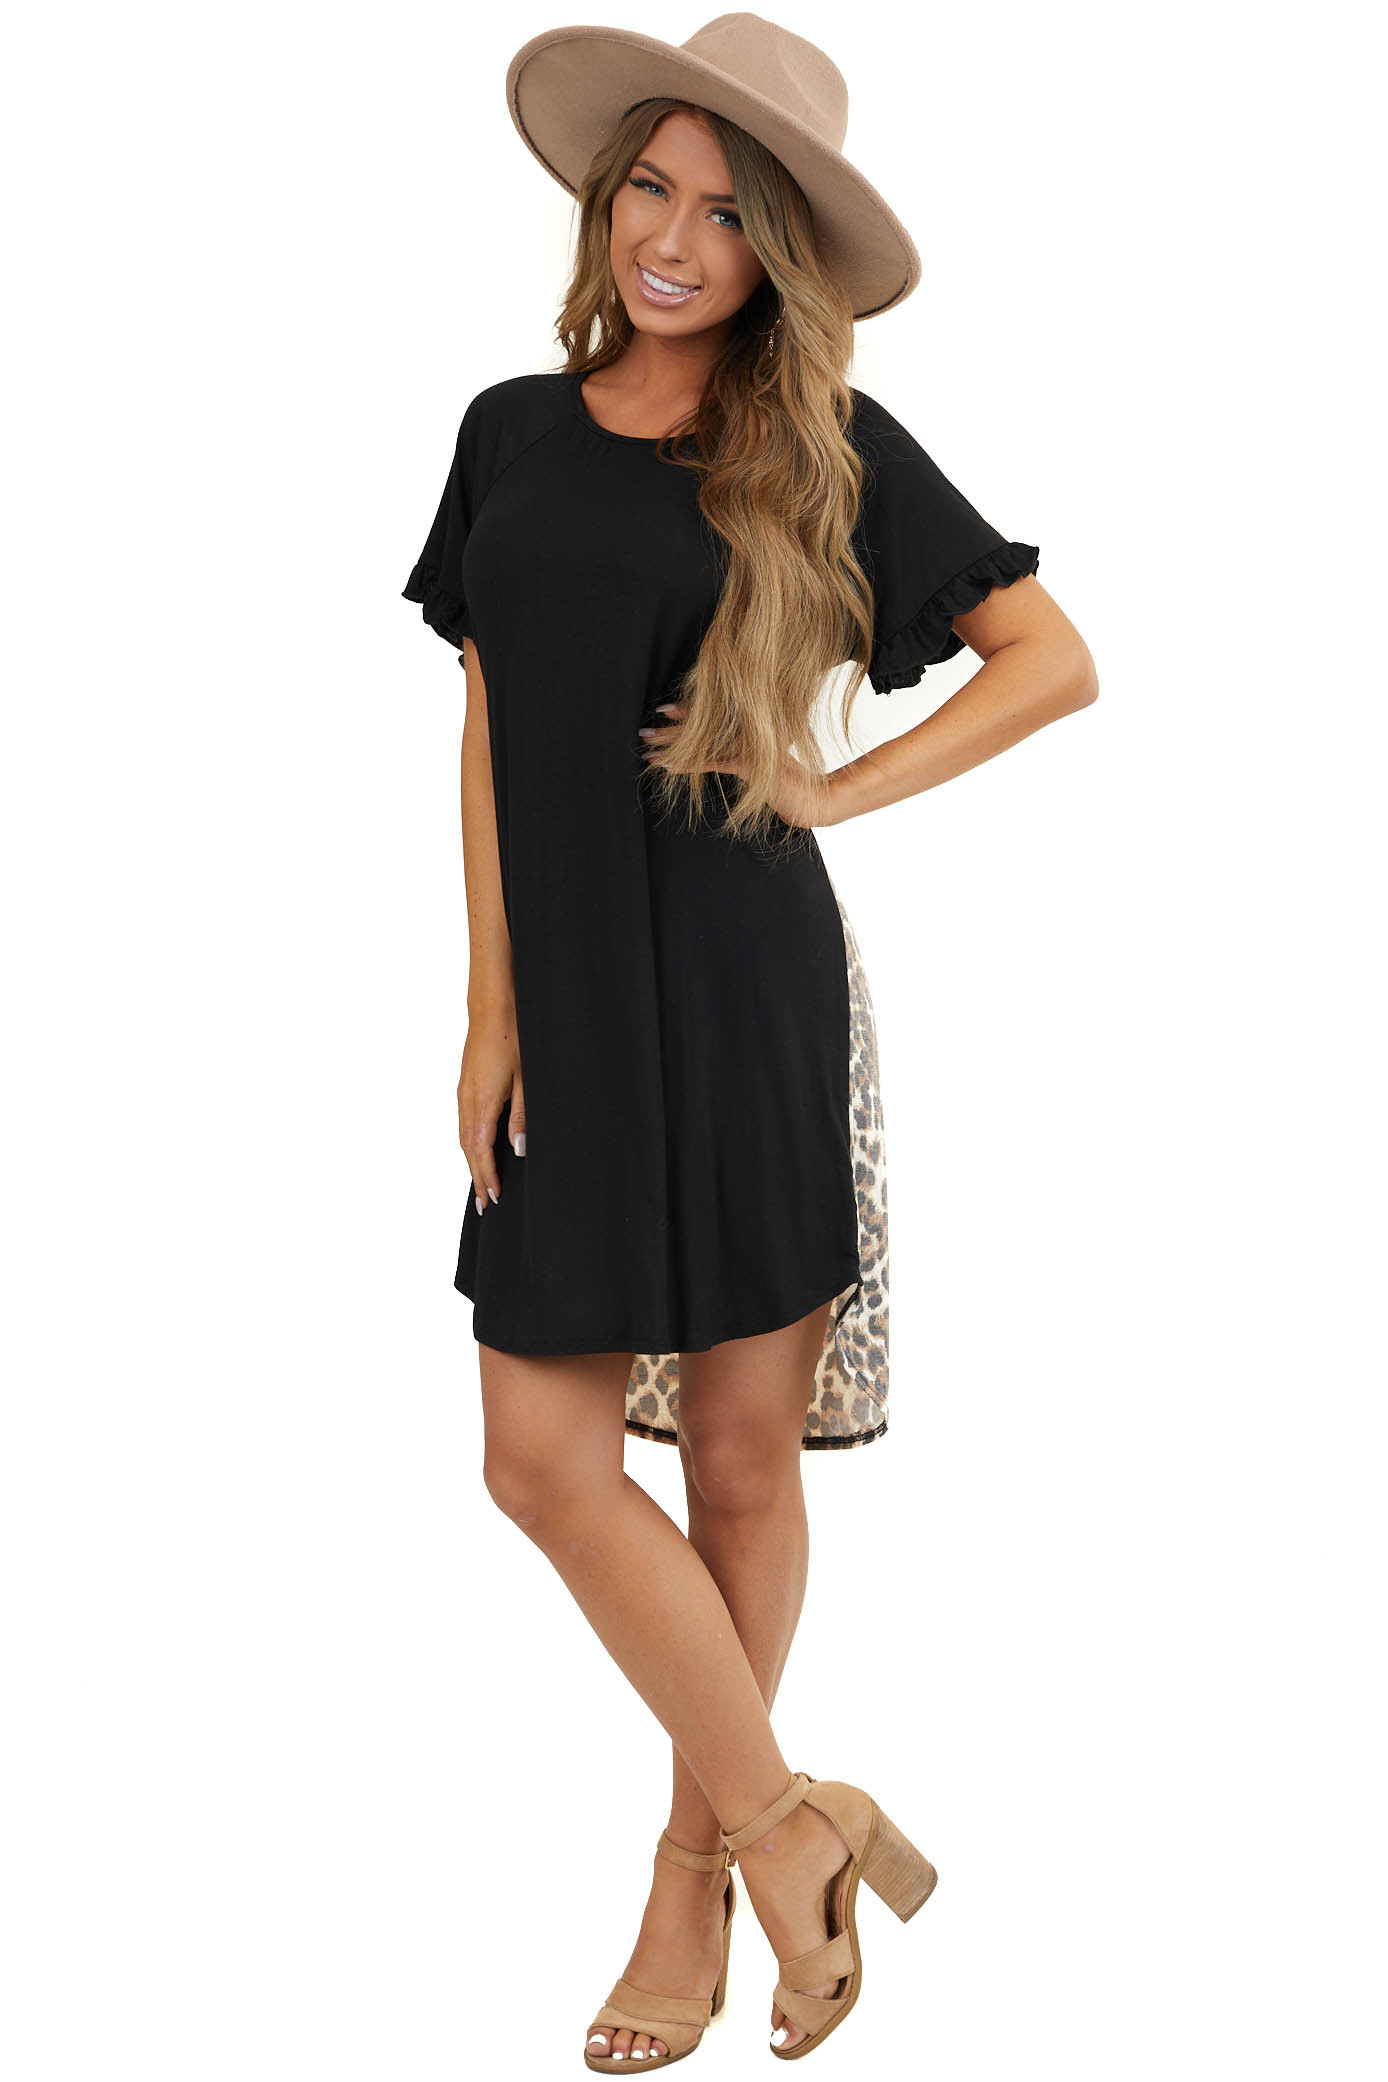 Black Dress with Leopard Print Contrast and Ruffle Sleeves